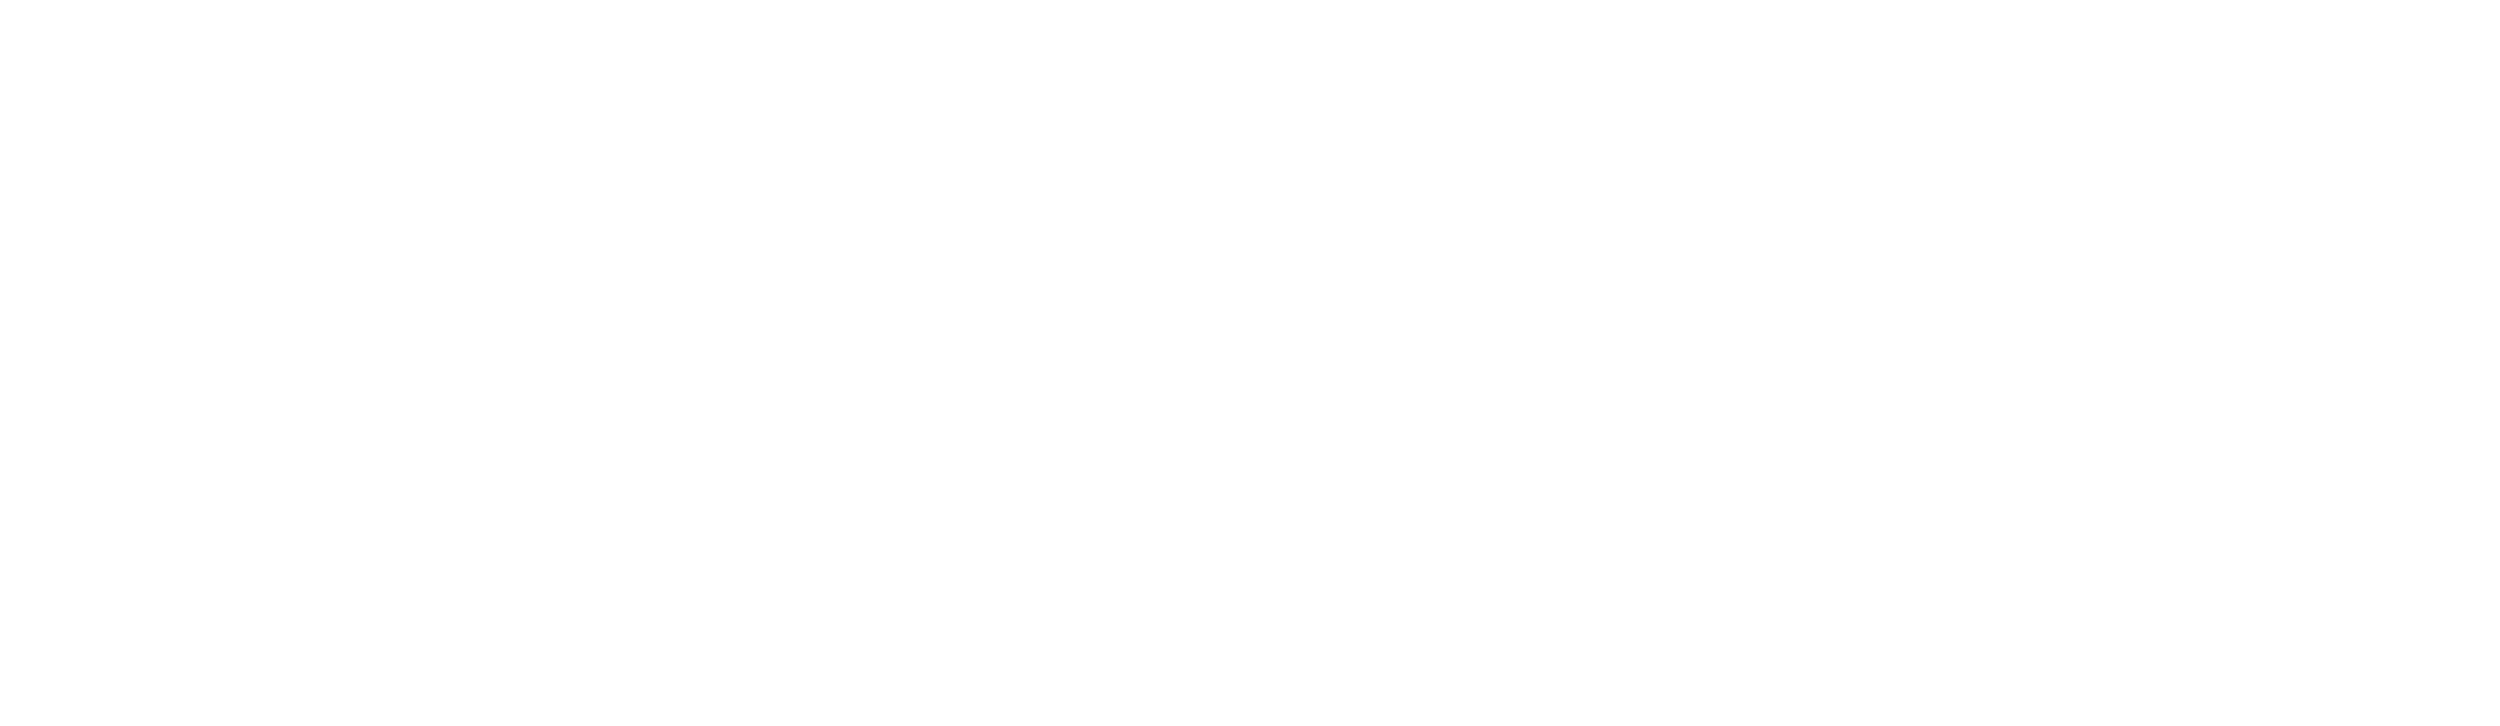 WINNER-LEOS-5.png